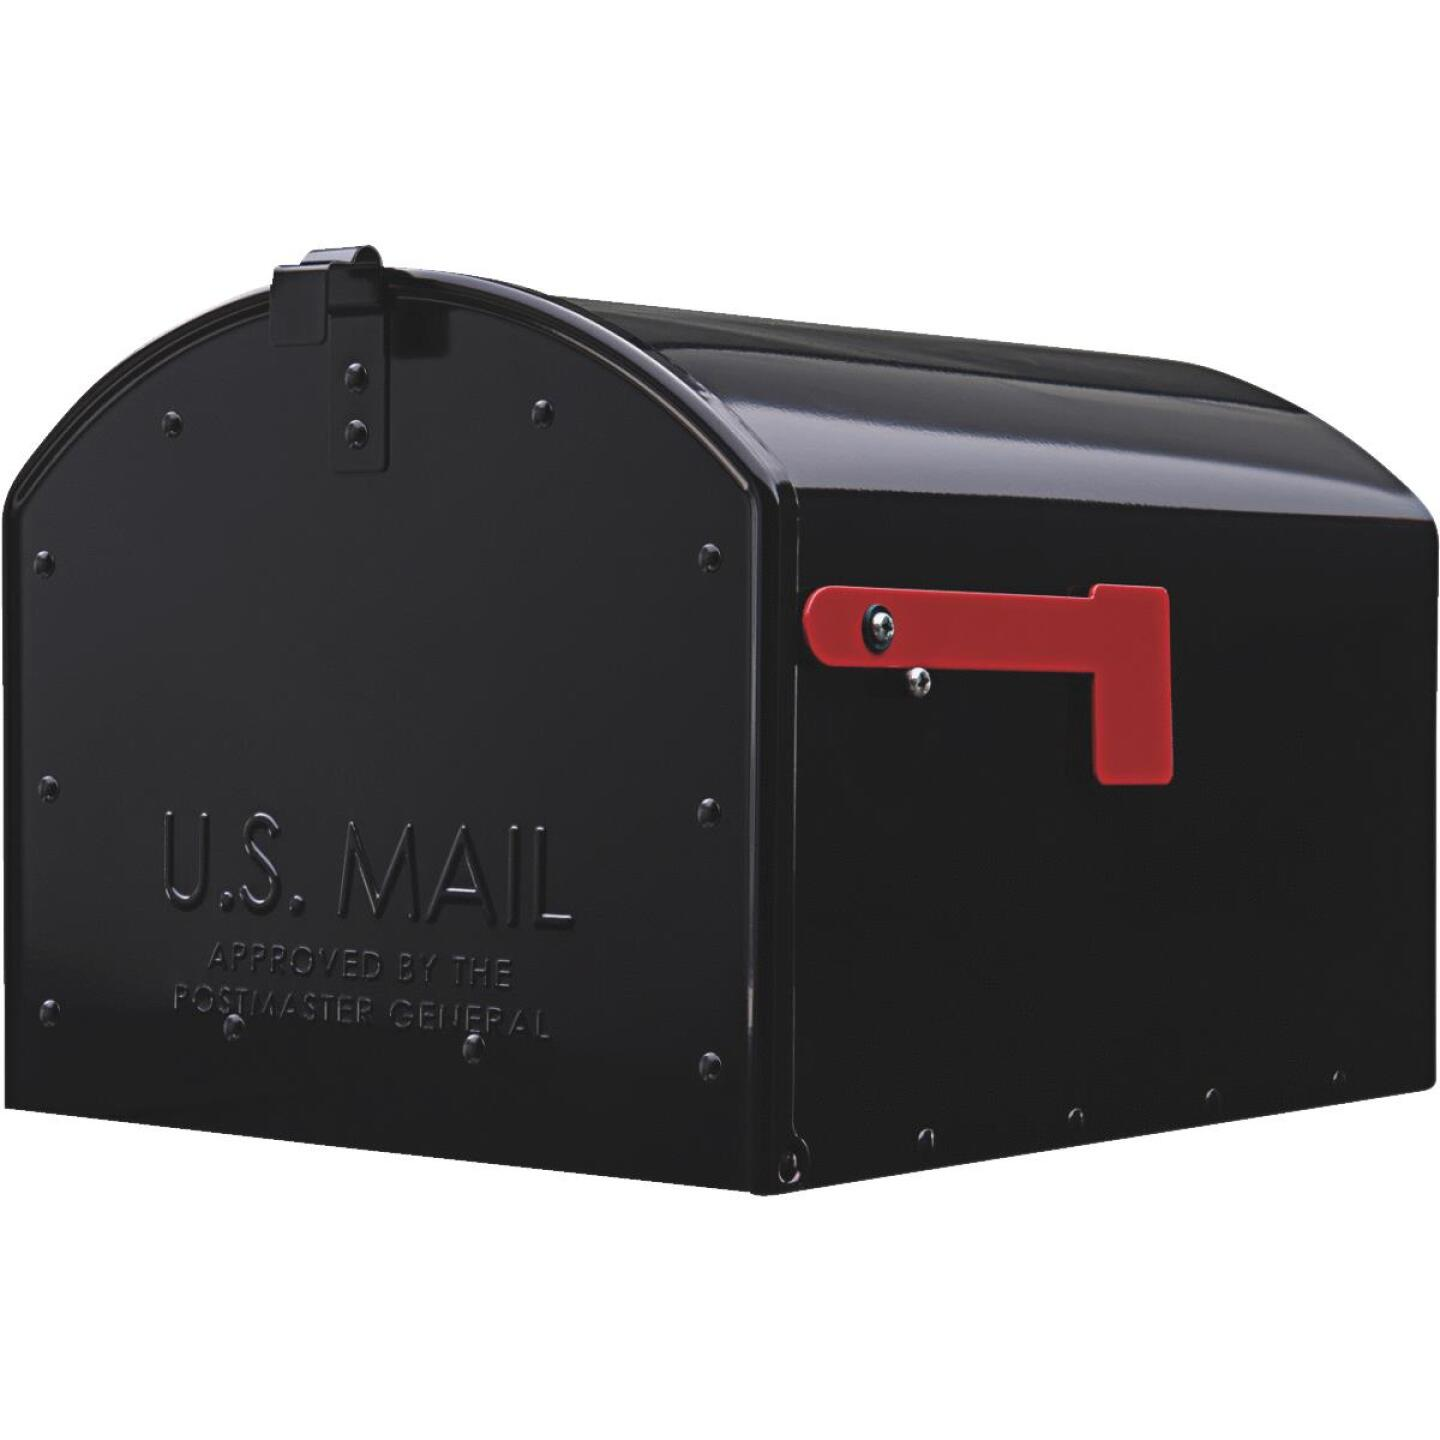 Gibraltar T4 Storehouse Extra Large Parcel Post Mount Mailbox Image 1